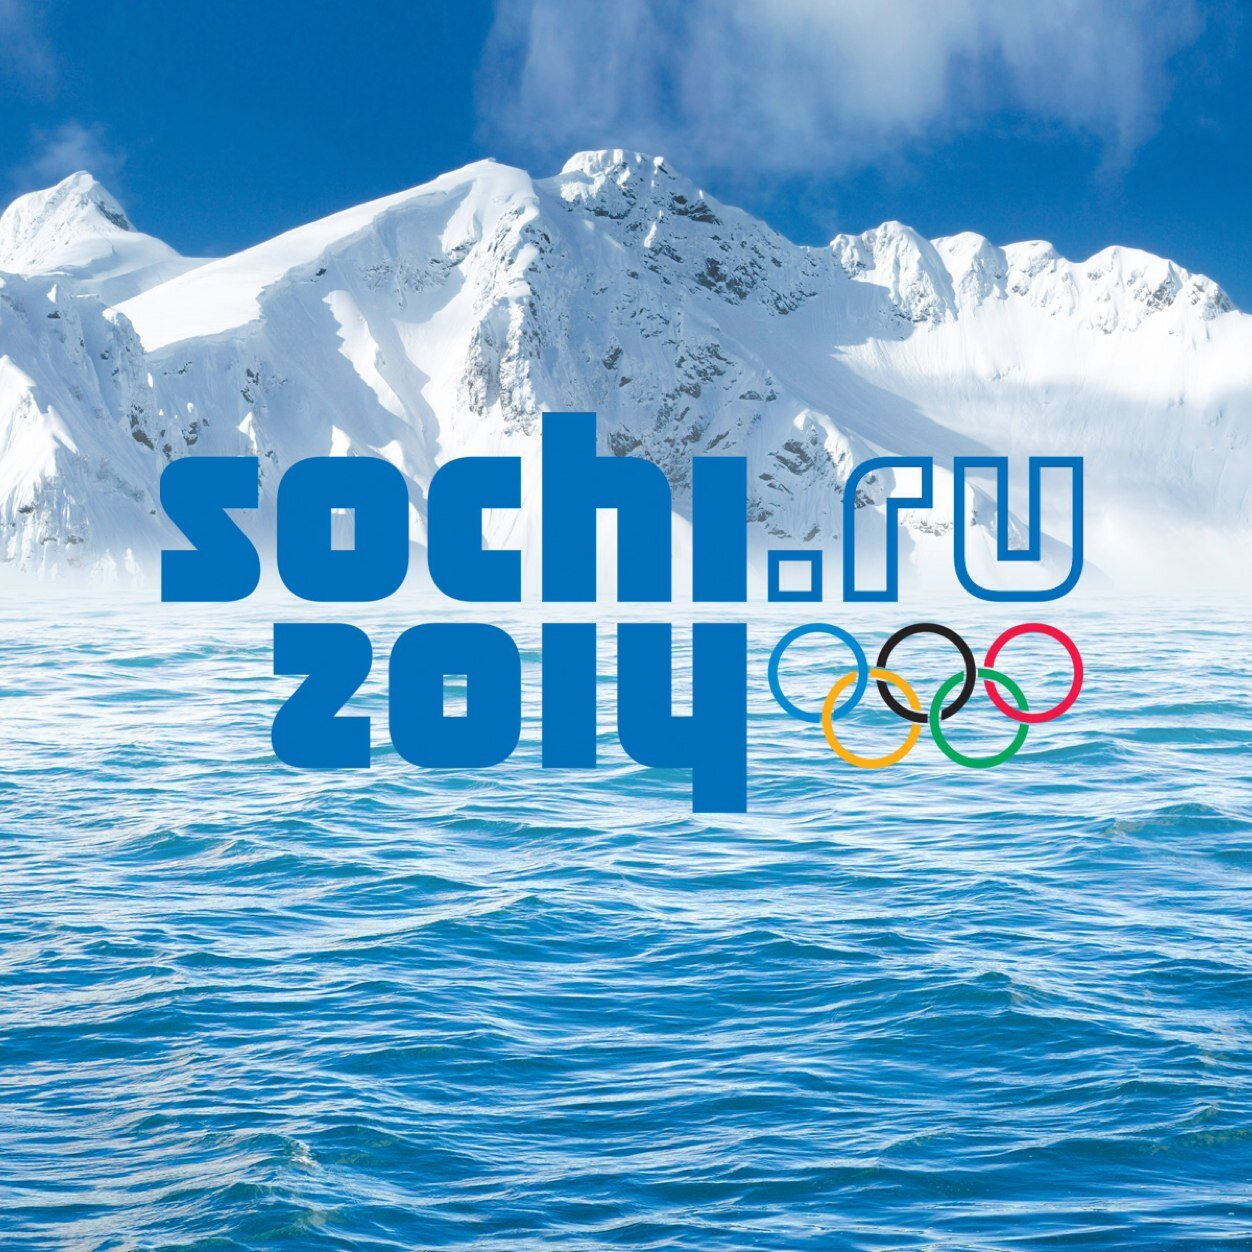 Sochi Issues Sochiissues Twitter - Sochi problems tweets